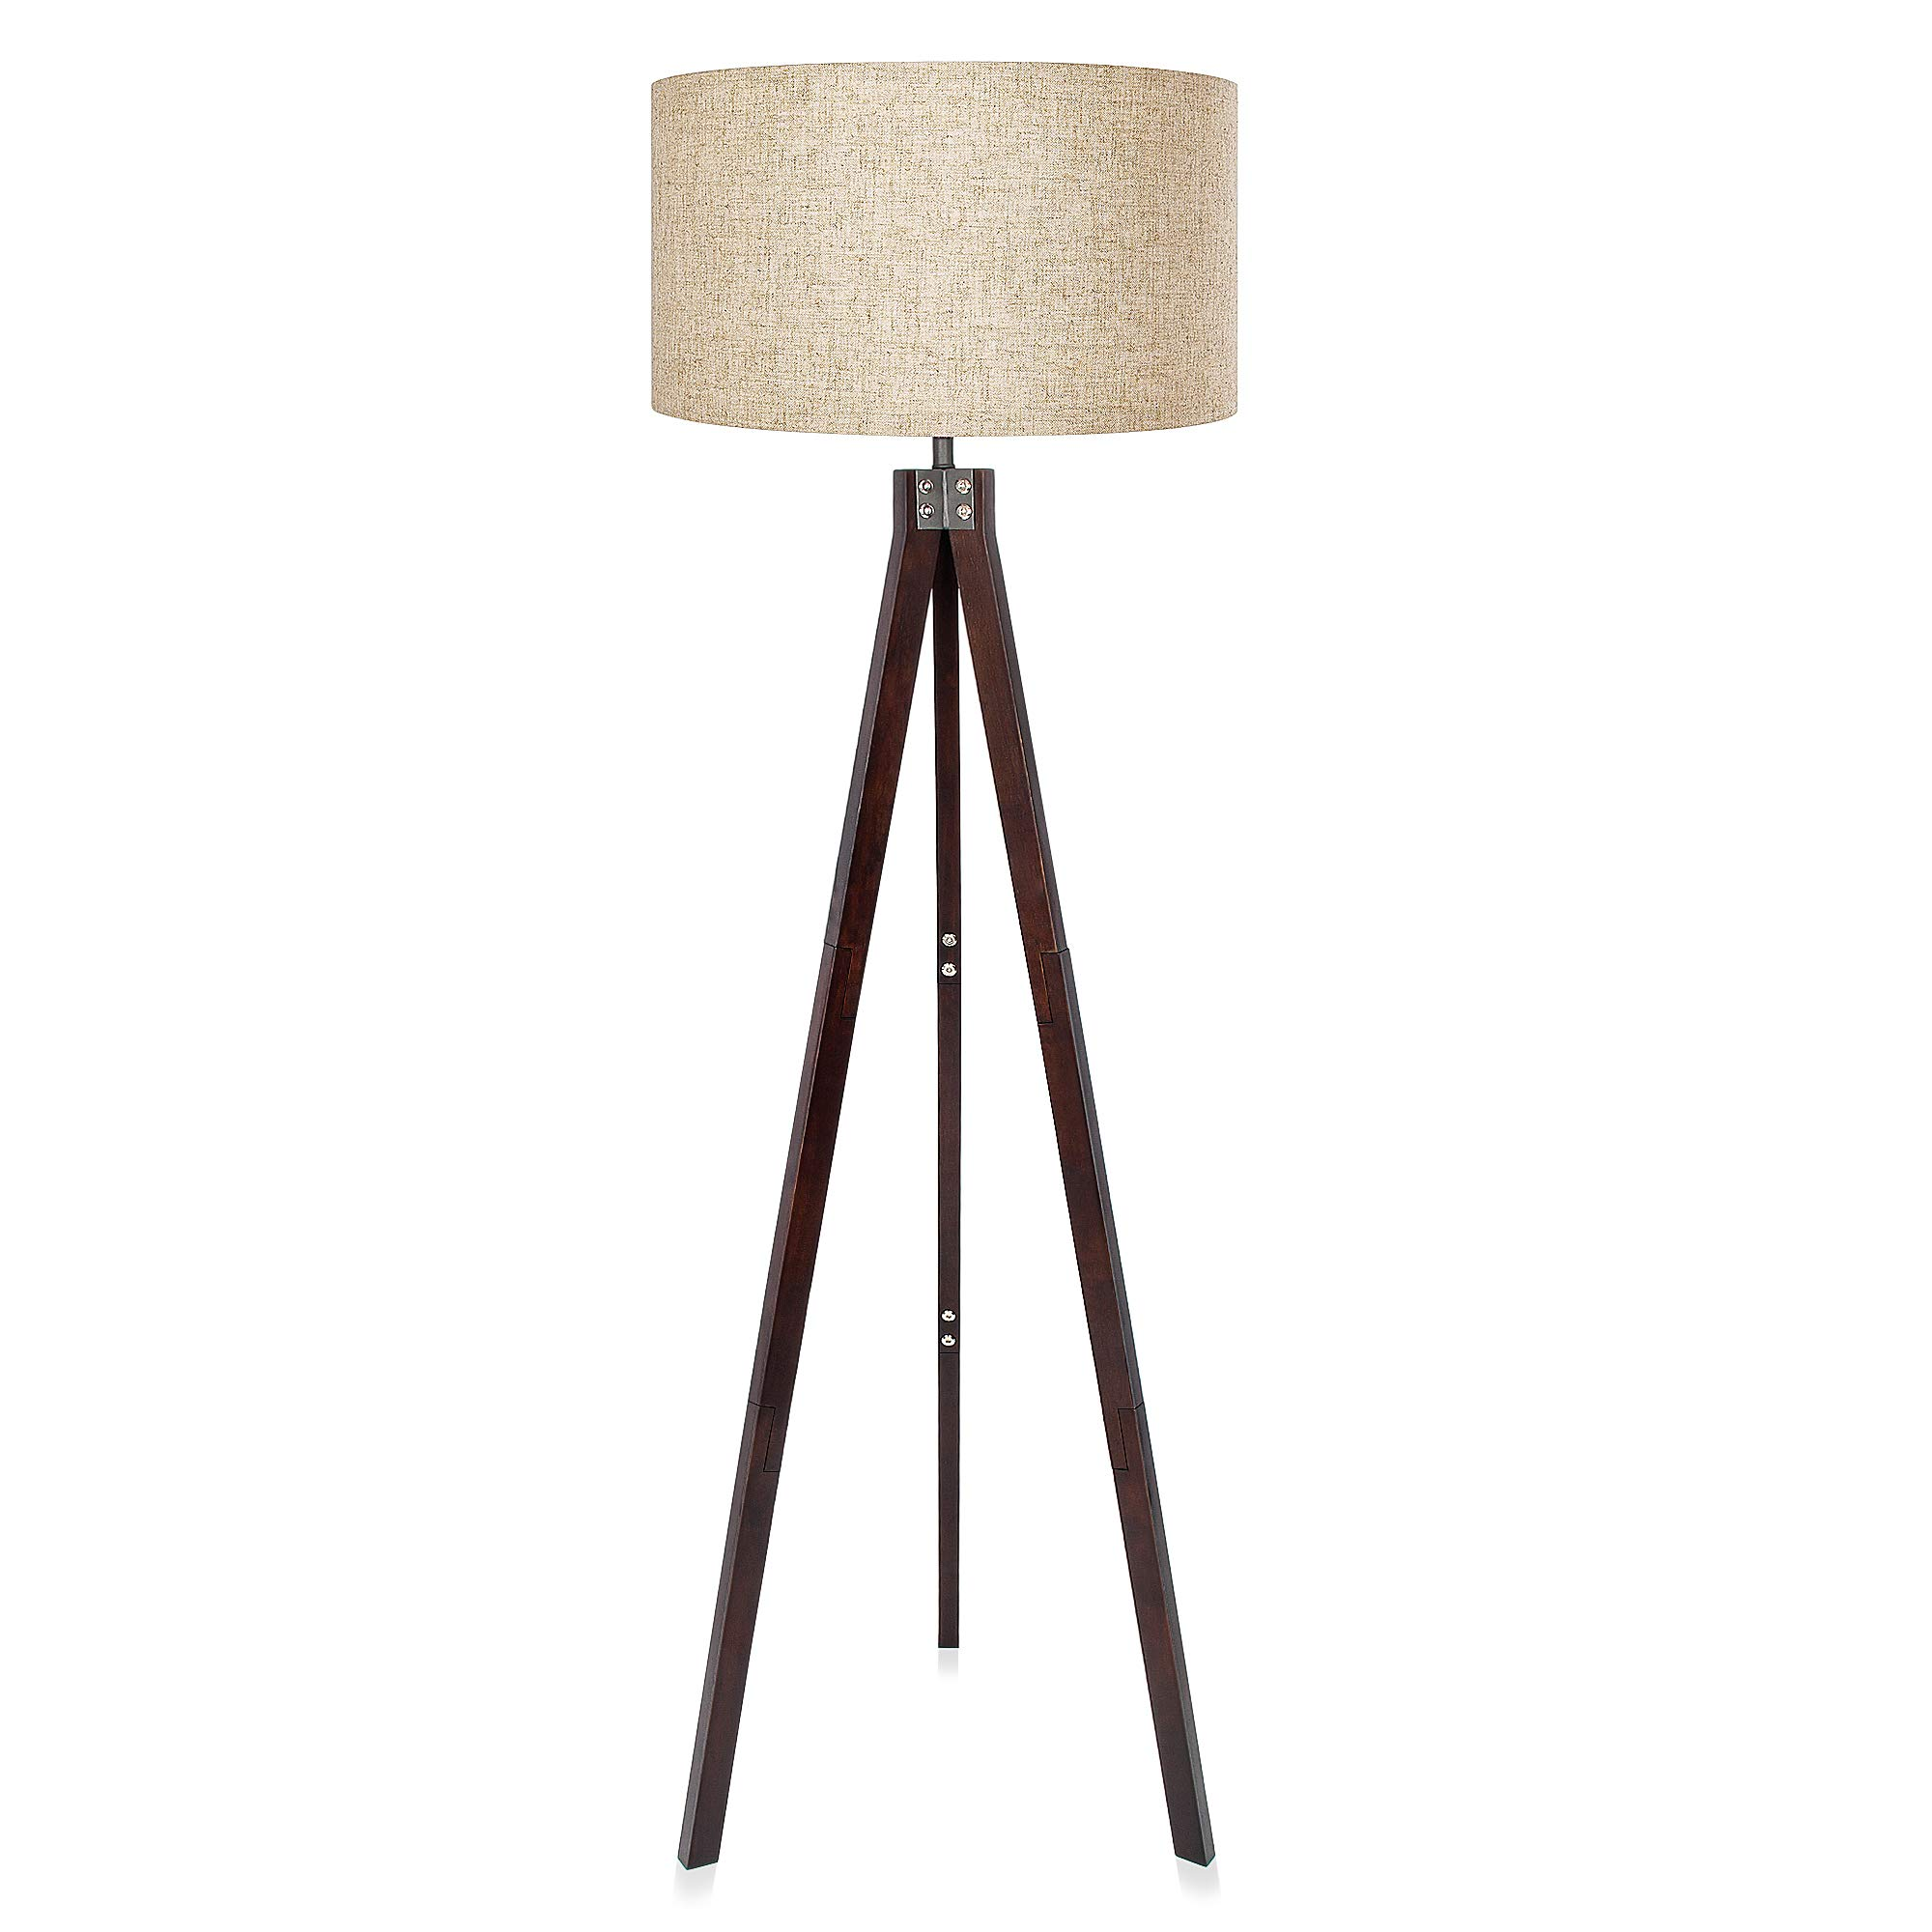 LEPOWER Wood Tripod Floor Lamp, Standing Reading Light for Living Room, Bedroom, Study Room and Office, Modern Design, Flaxen Lamp Shade with E26 Lamp Base (Black Walnut) by LEPOWER